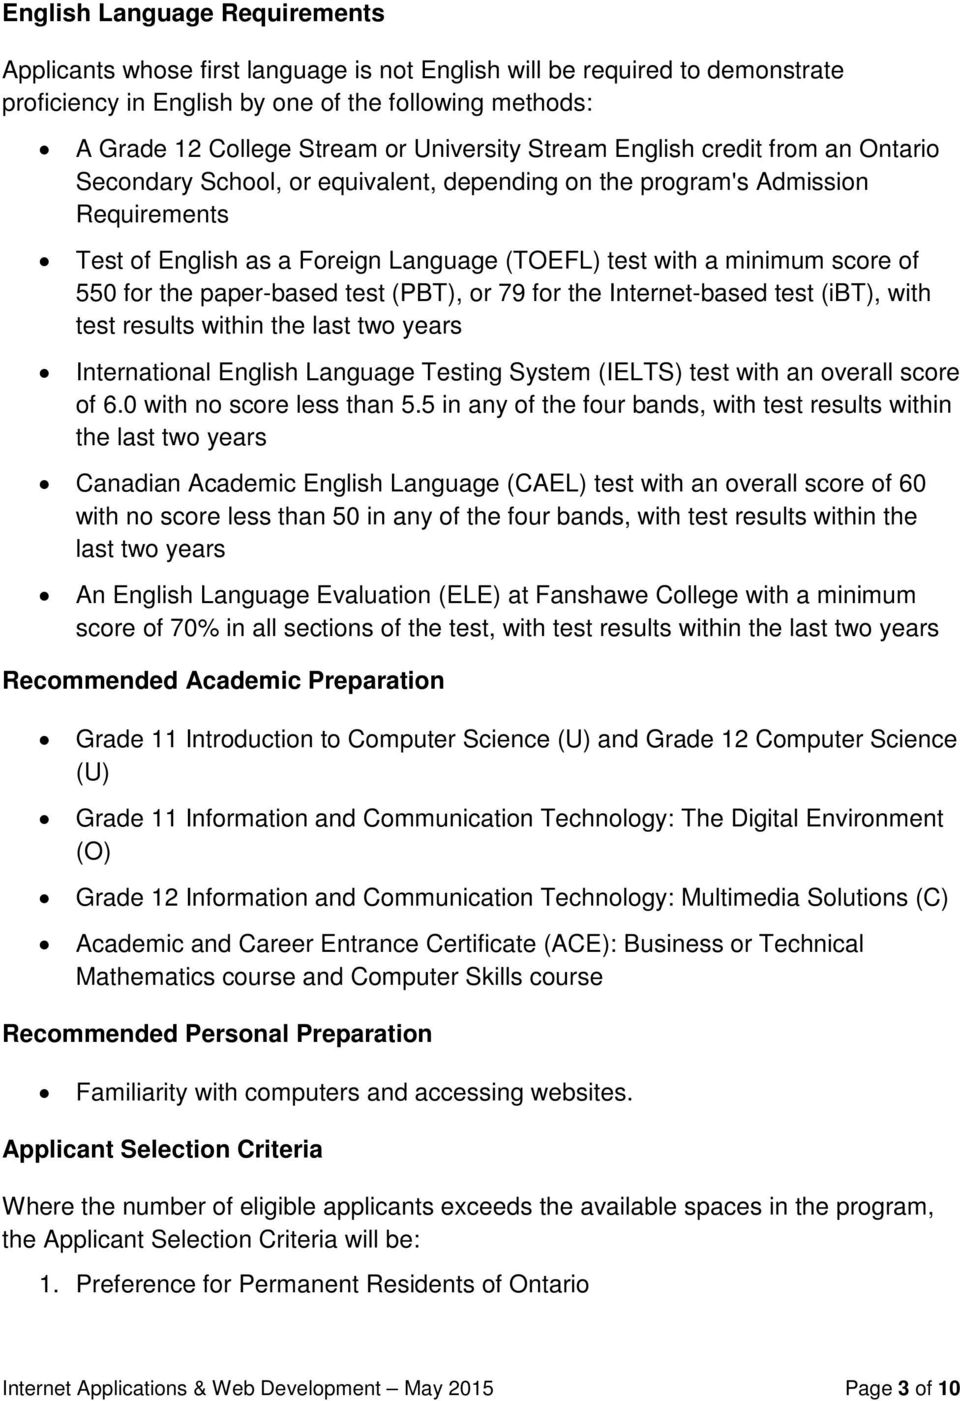 score of 550 for the paper-based test (PBT), or 79 for the Internet-based test (ibt), with test results within the last two years International English Language Testing System (IELTS) test with an